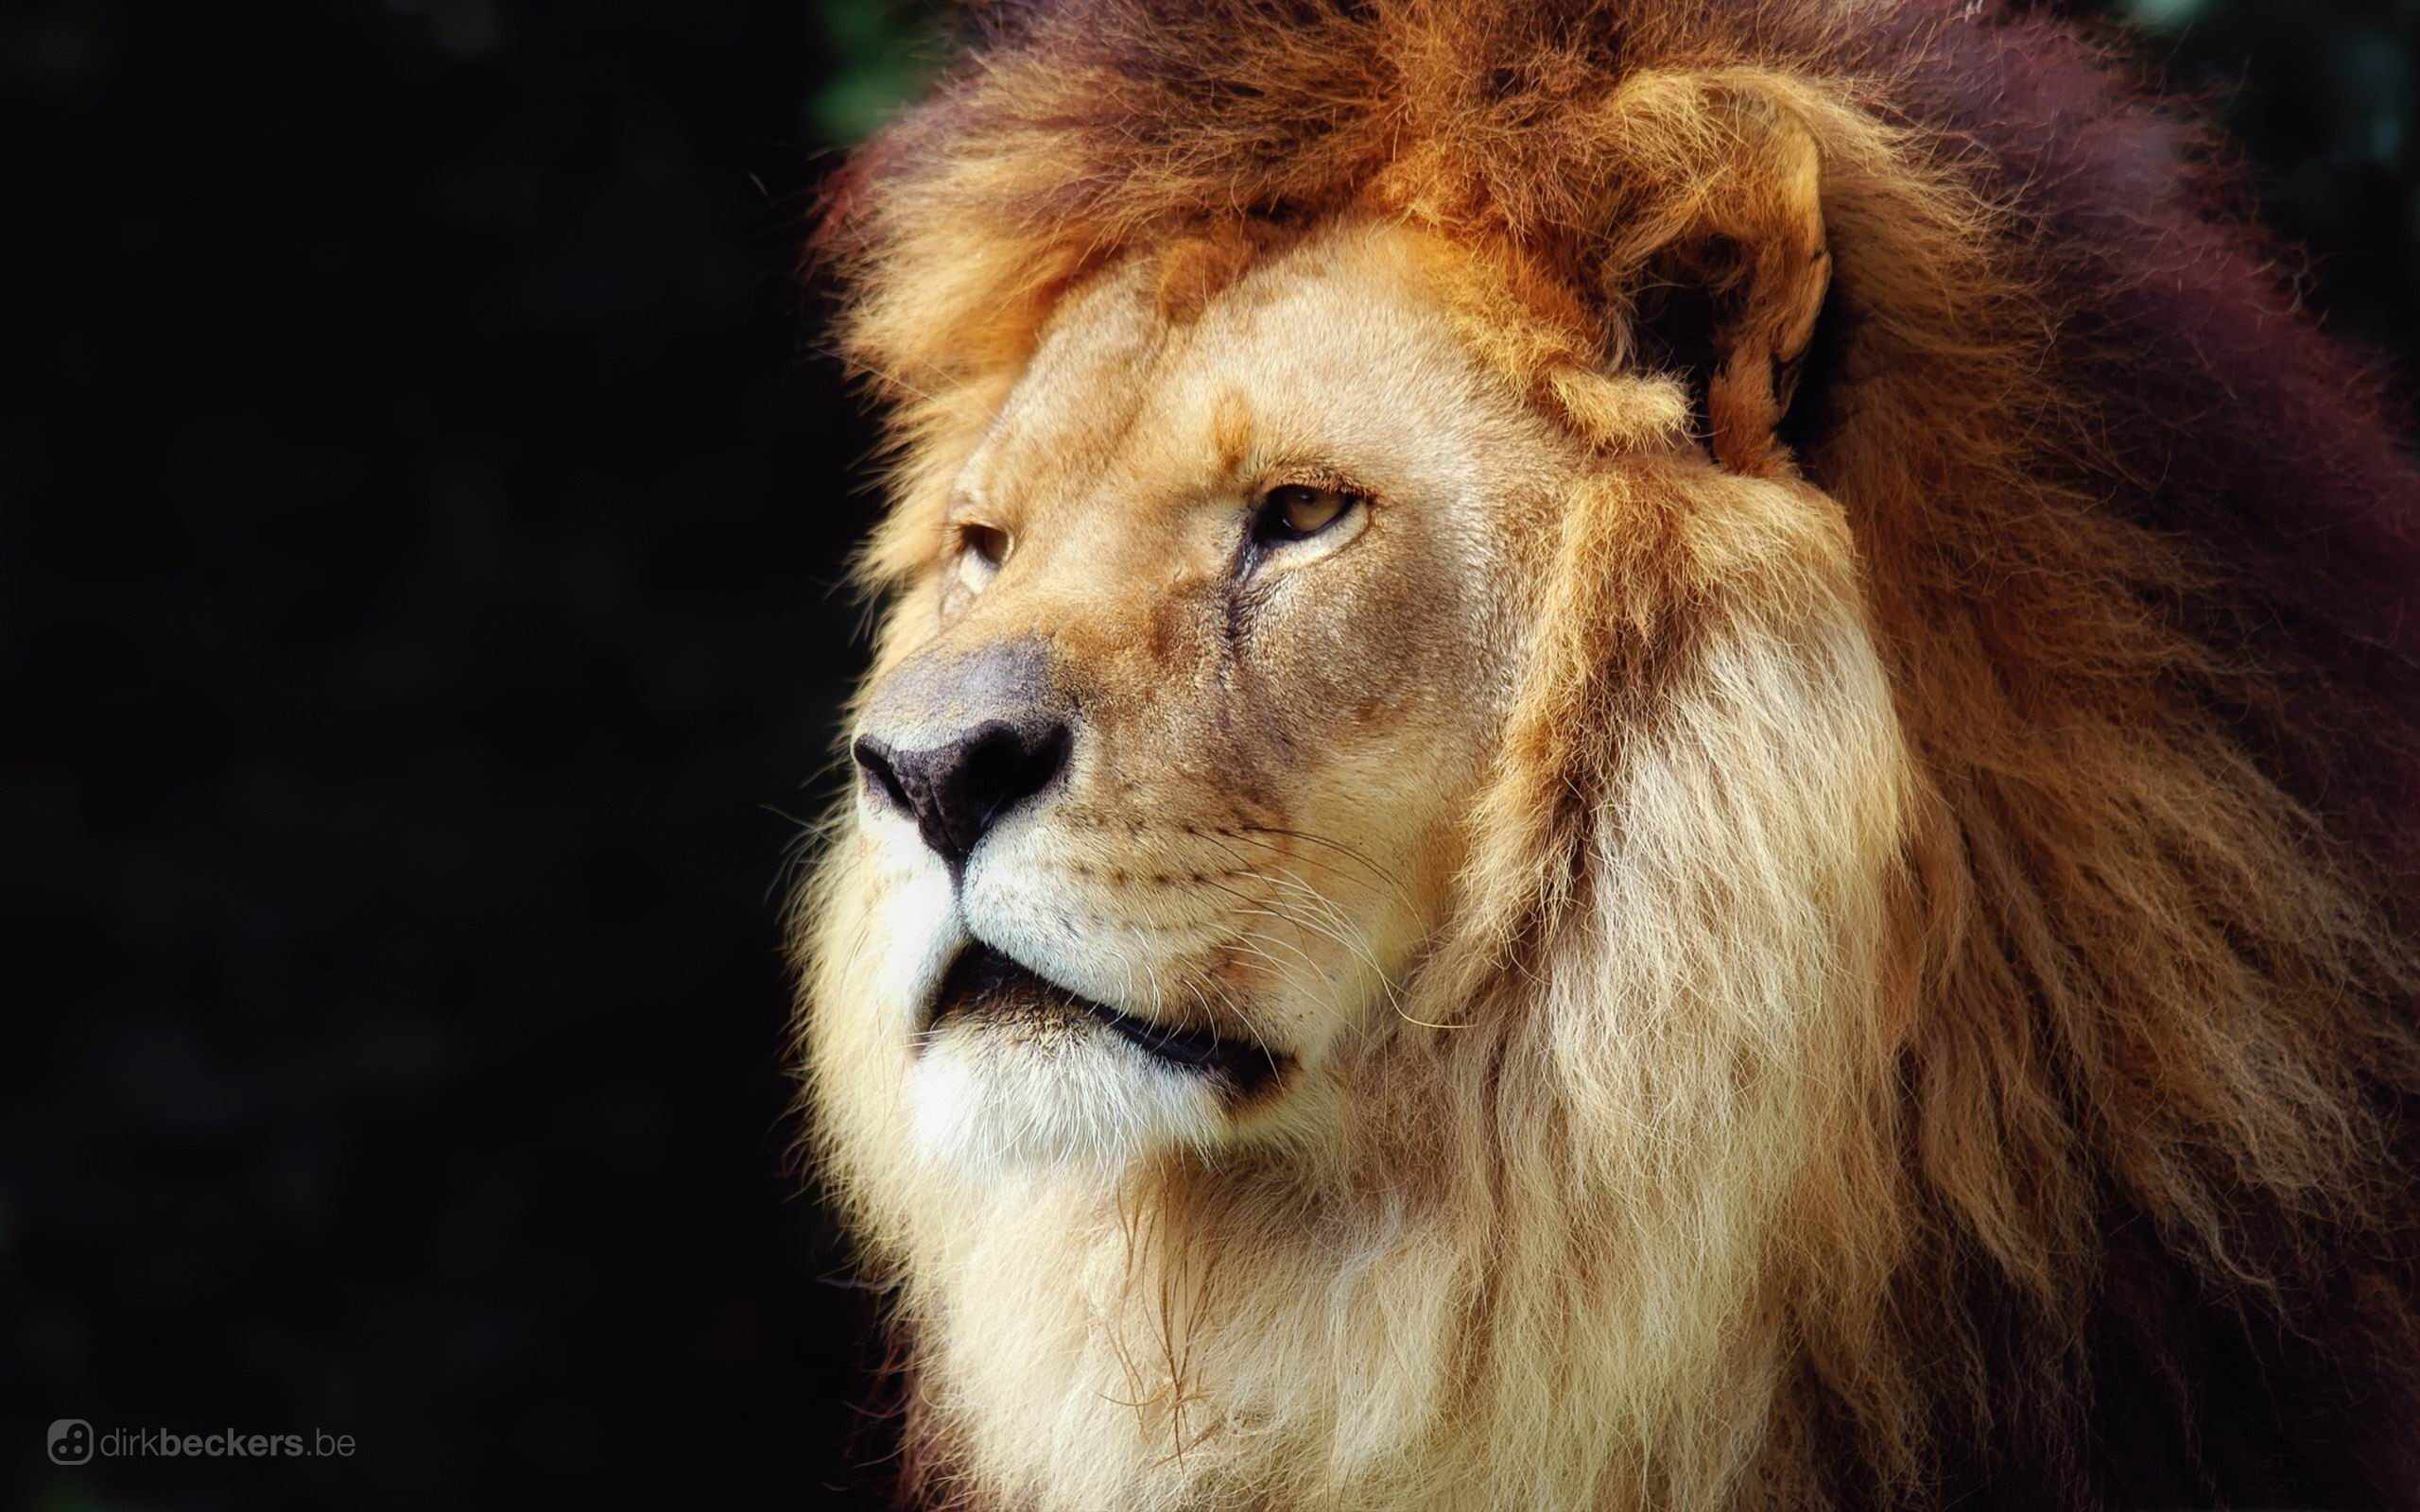 lion-wild animal desktop wallpaper - 2560x1600 wallpaper download -